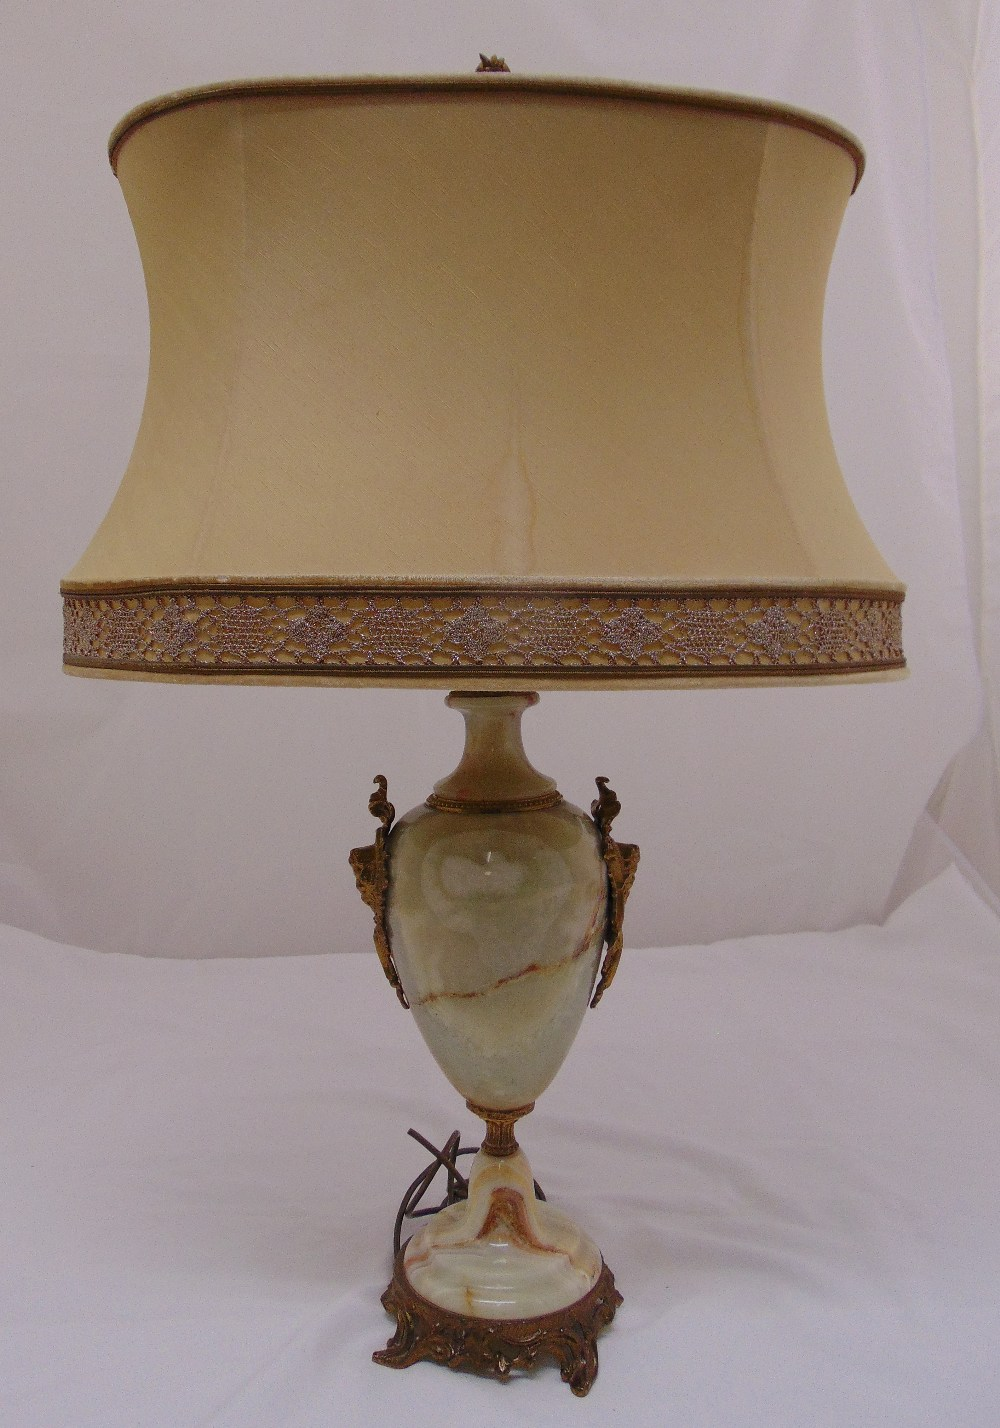 Lot 38 - An onyx baluster form table lamp with gilt metal mounts on circular base, to include shade, 78cm (